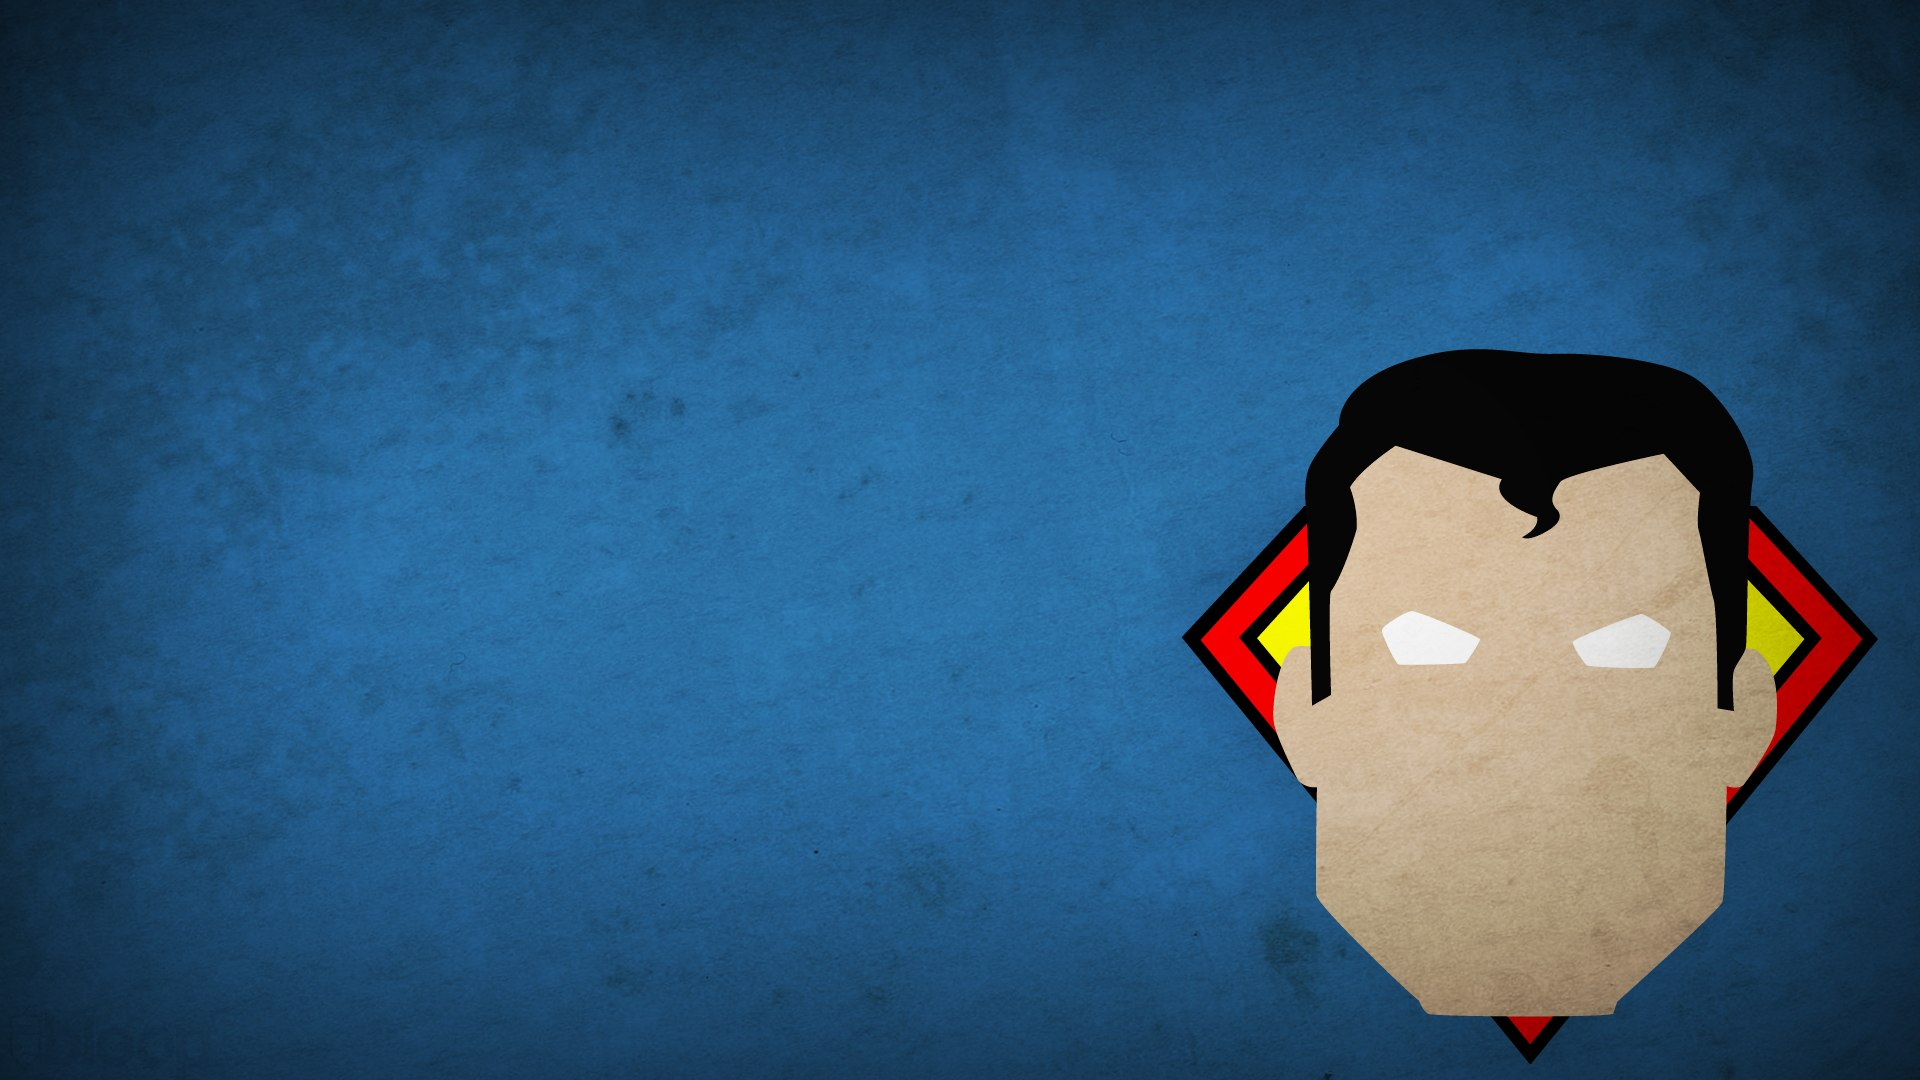 superman-wallpaper-1920x1080